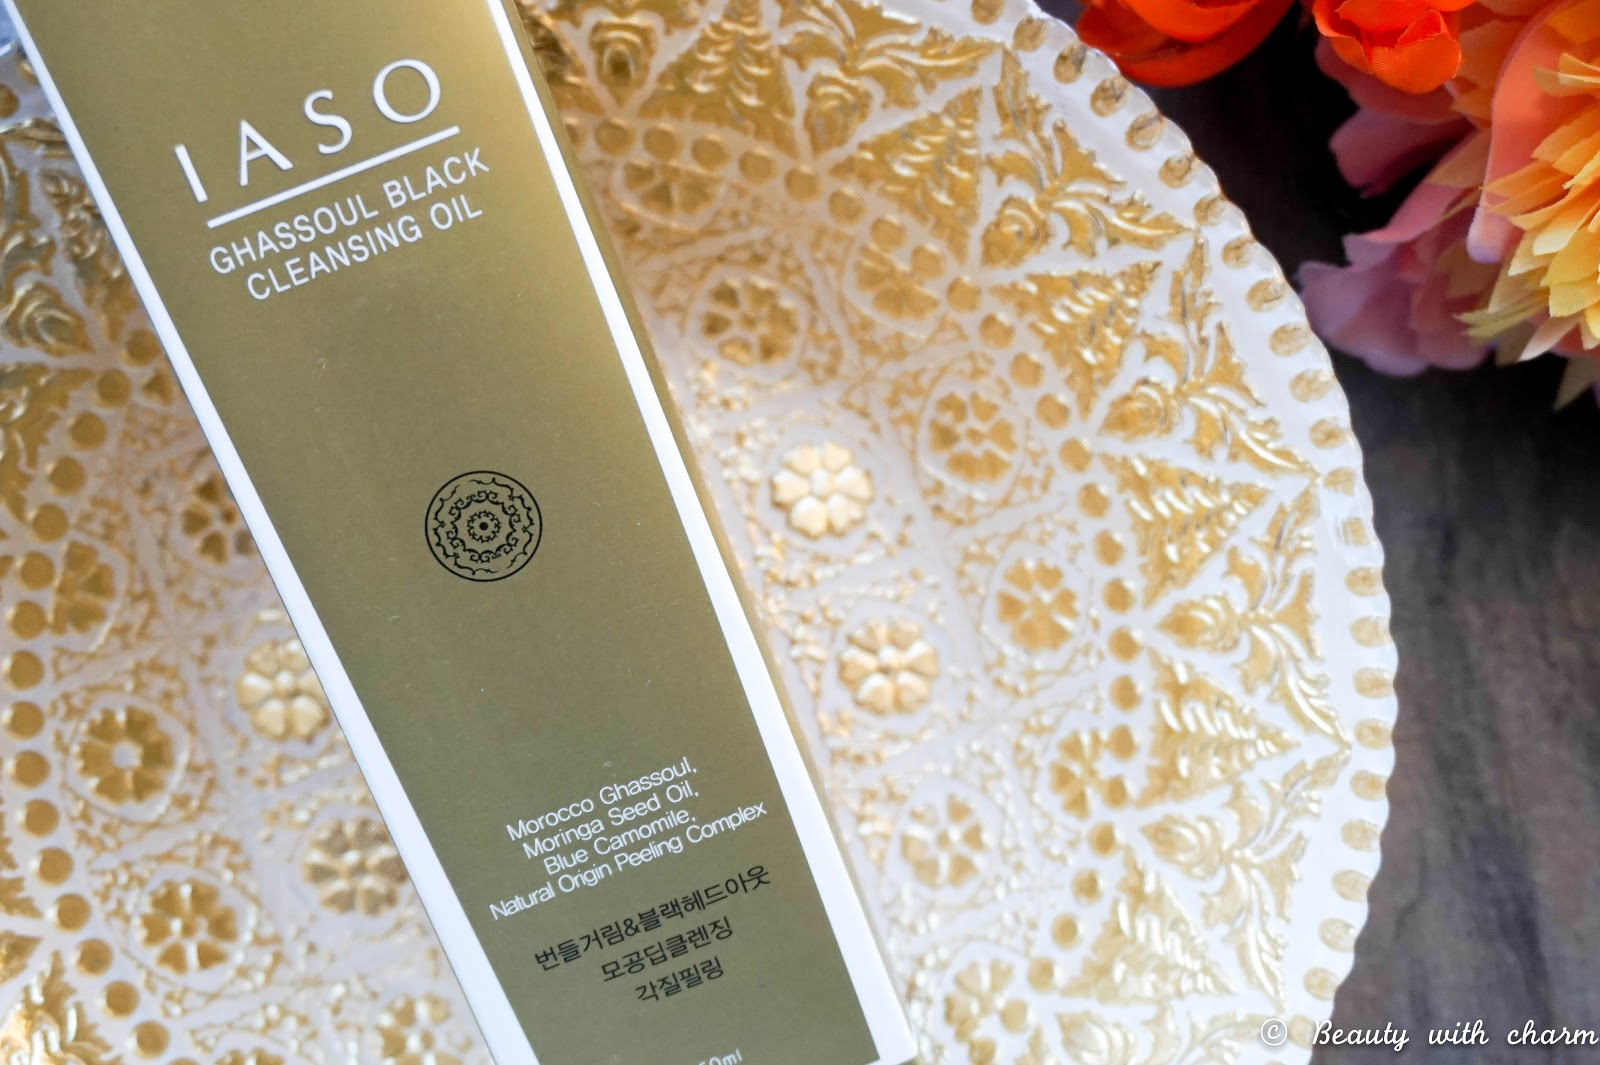 IASO Ghassoul Black Cleansing Oil